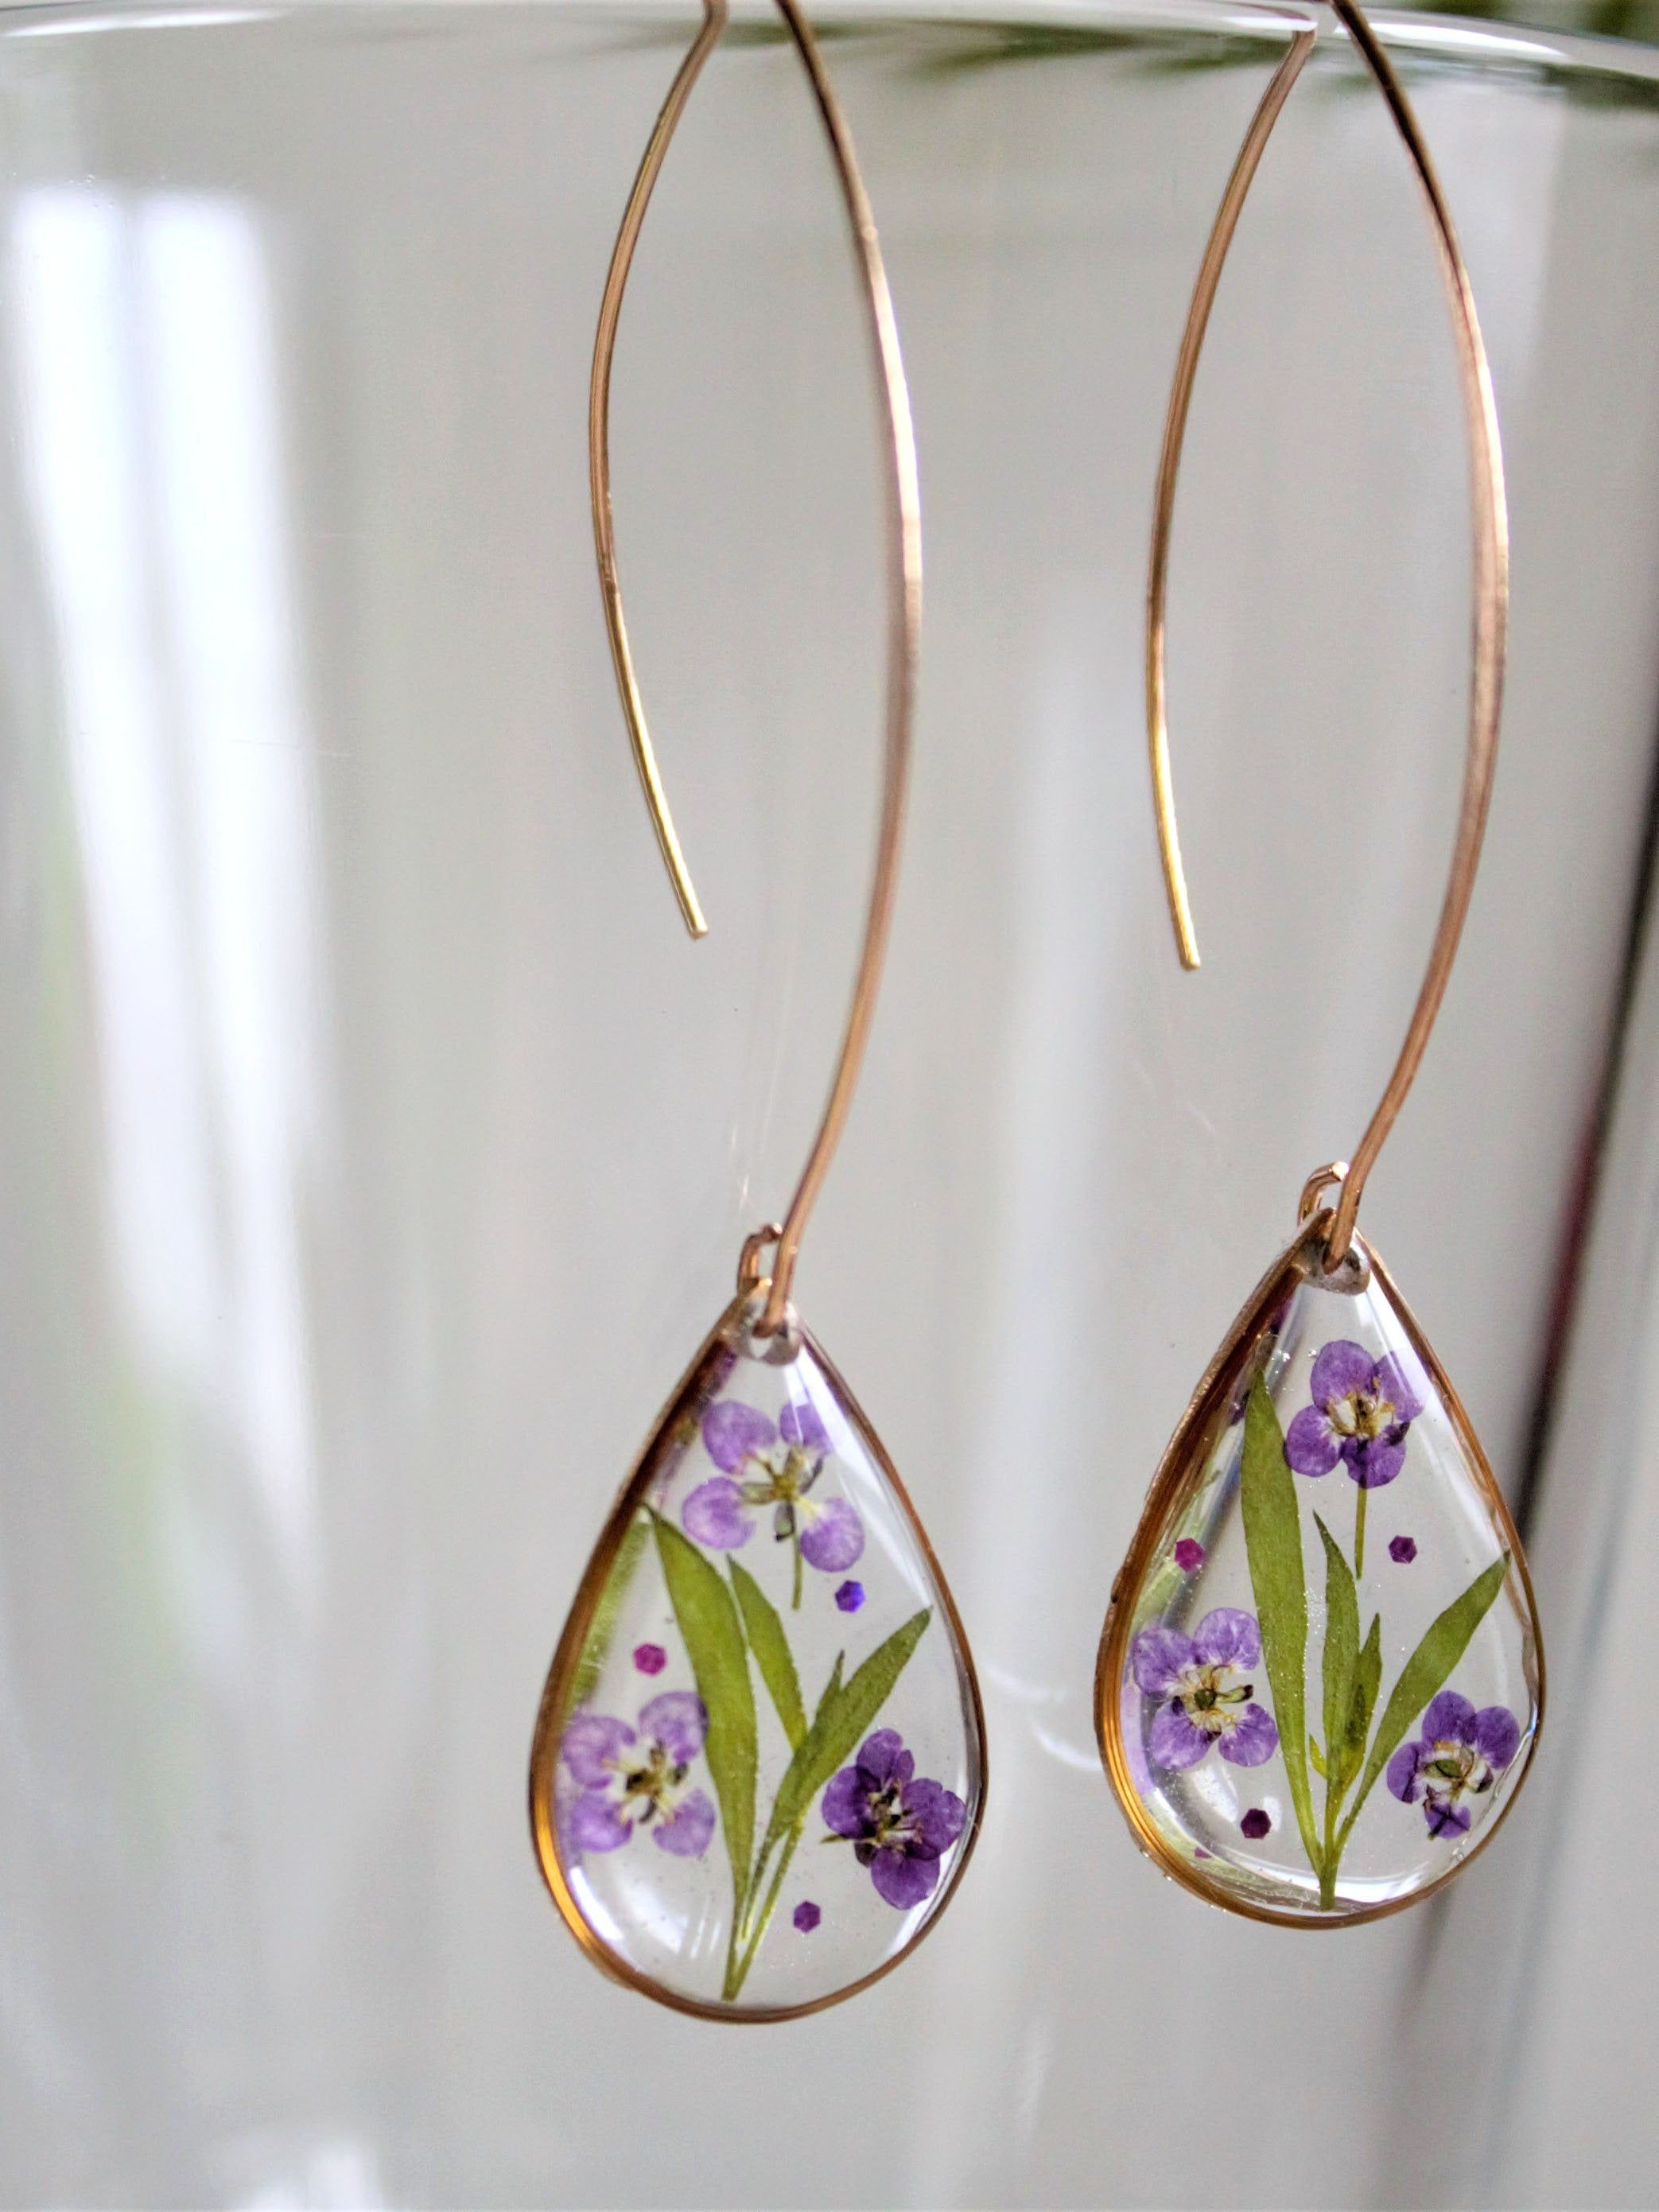 Photo of Real Pressed Flowers Earrings.Dried Flowers Art Boho Jewellery.Dry Purple Alyssum in Resin.Botanical jewelry.Graduation Gift. Gift for her